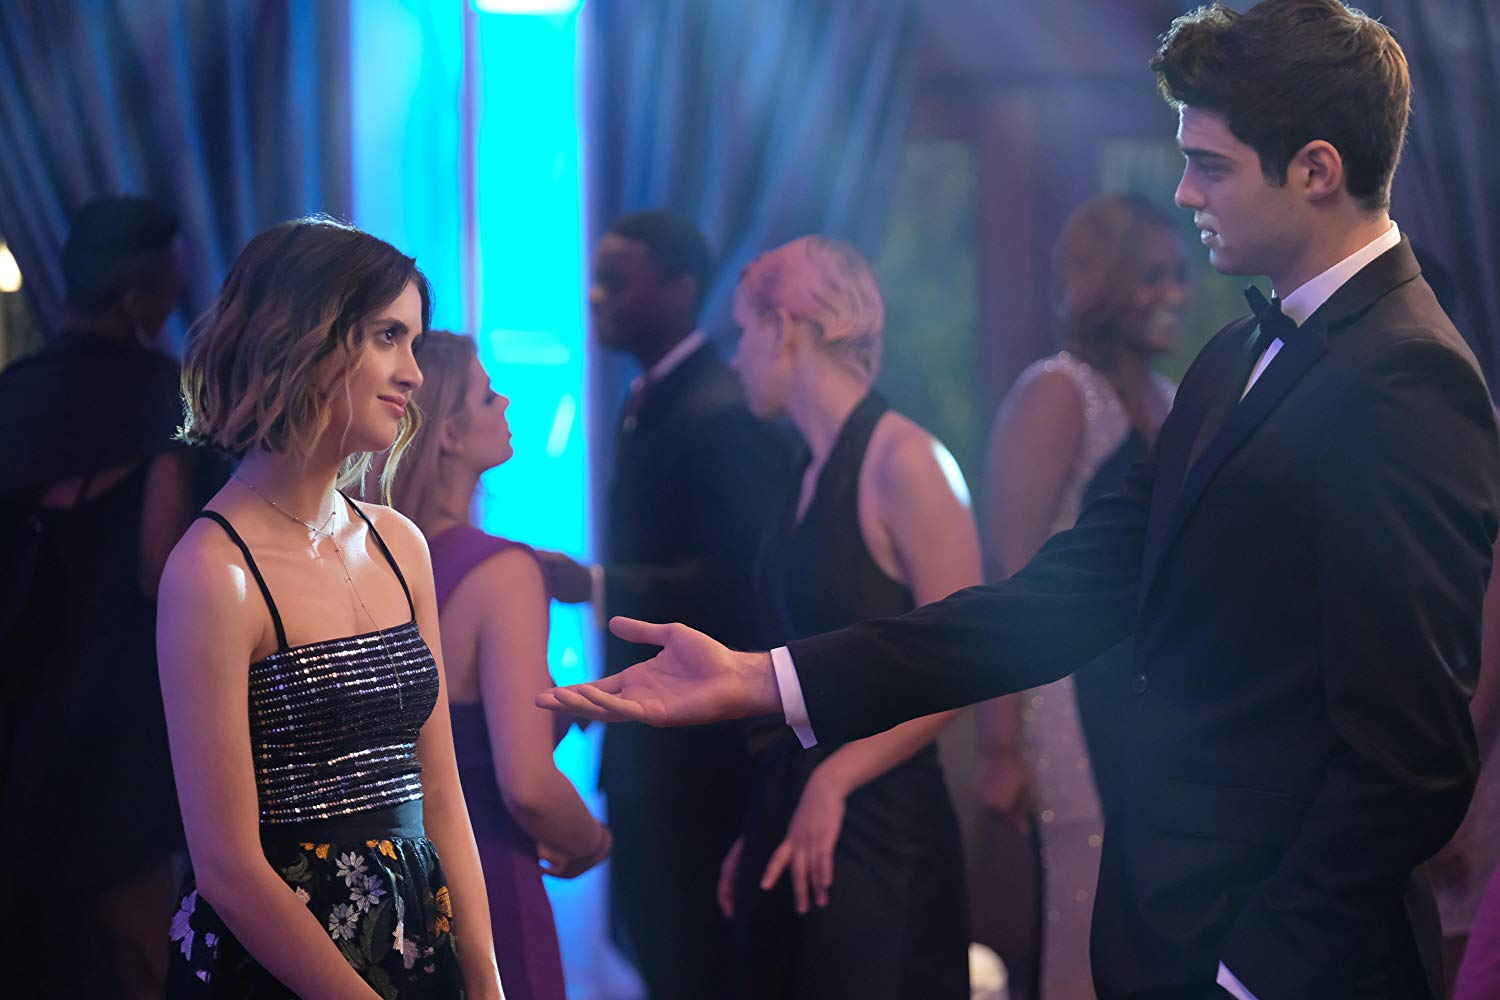 'The Perfect Date' proves to be disappointing